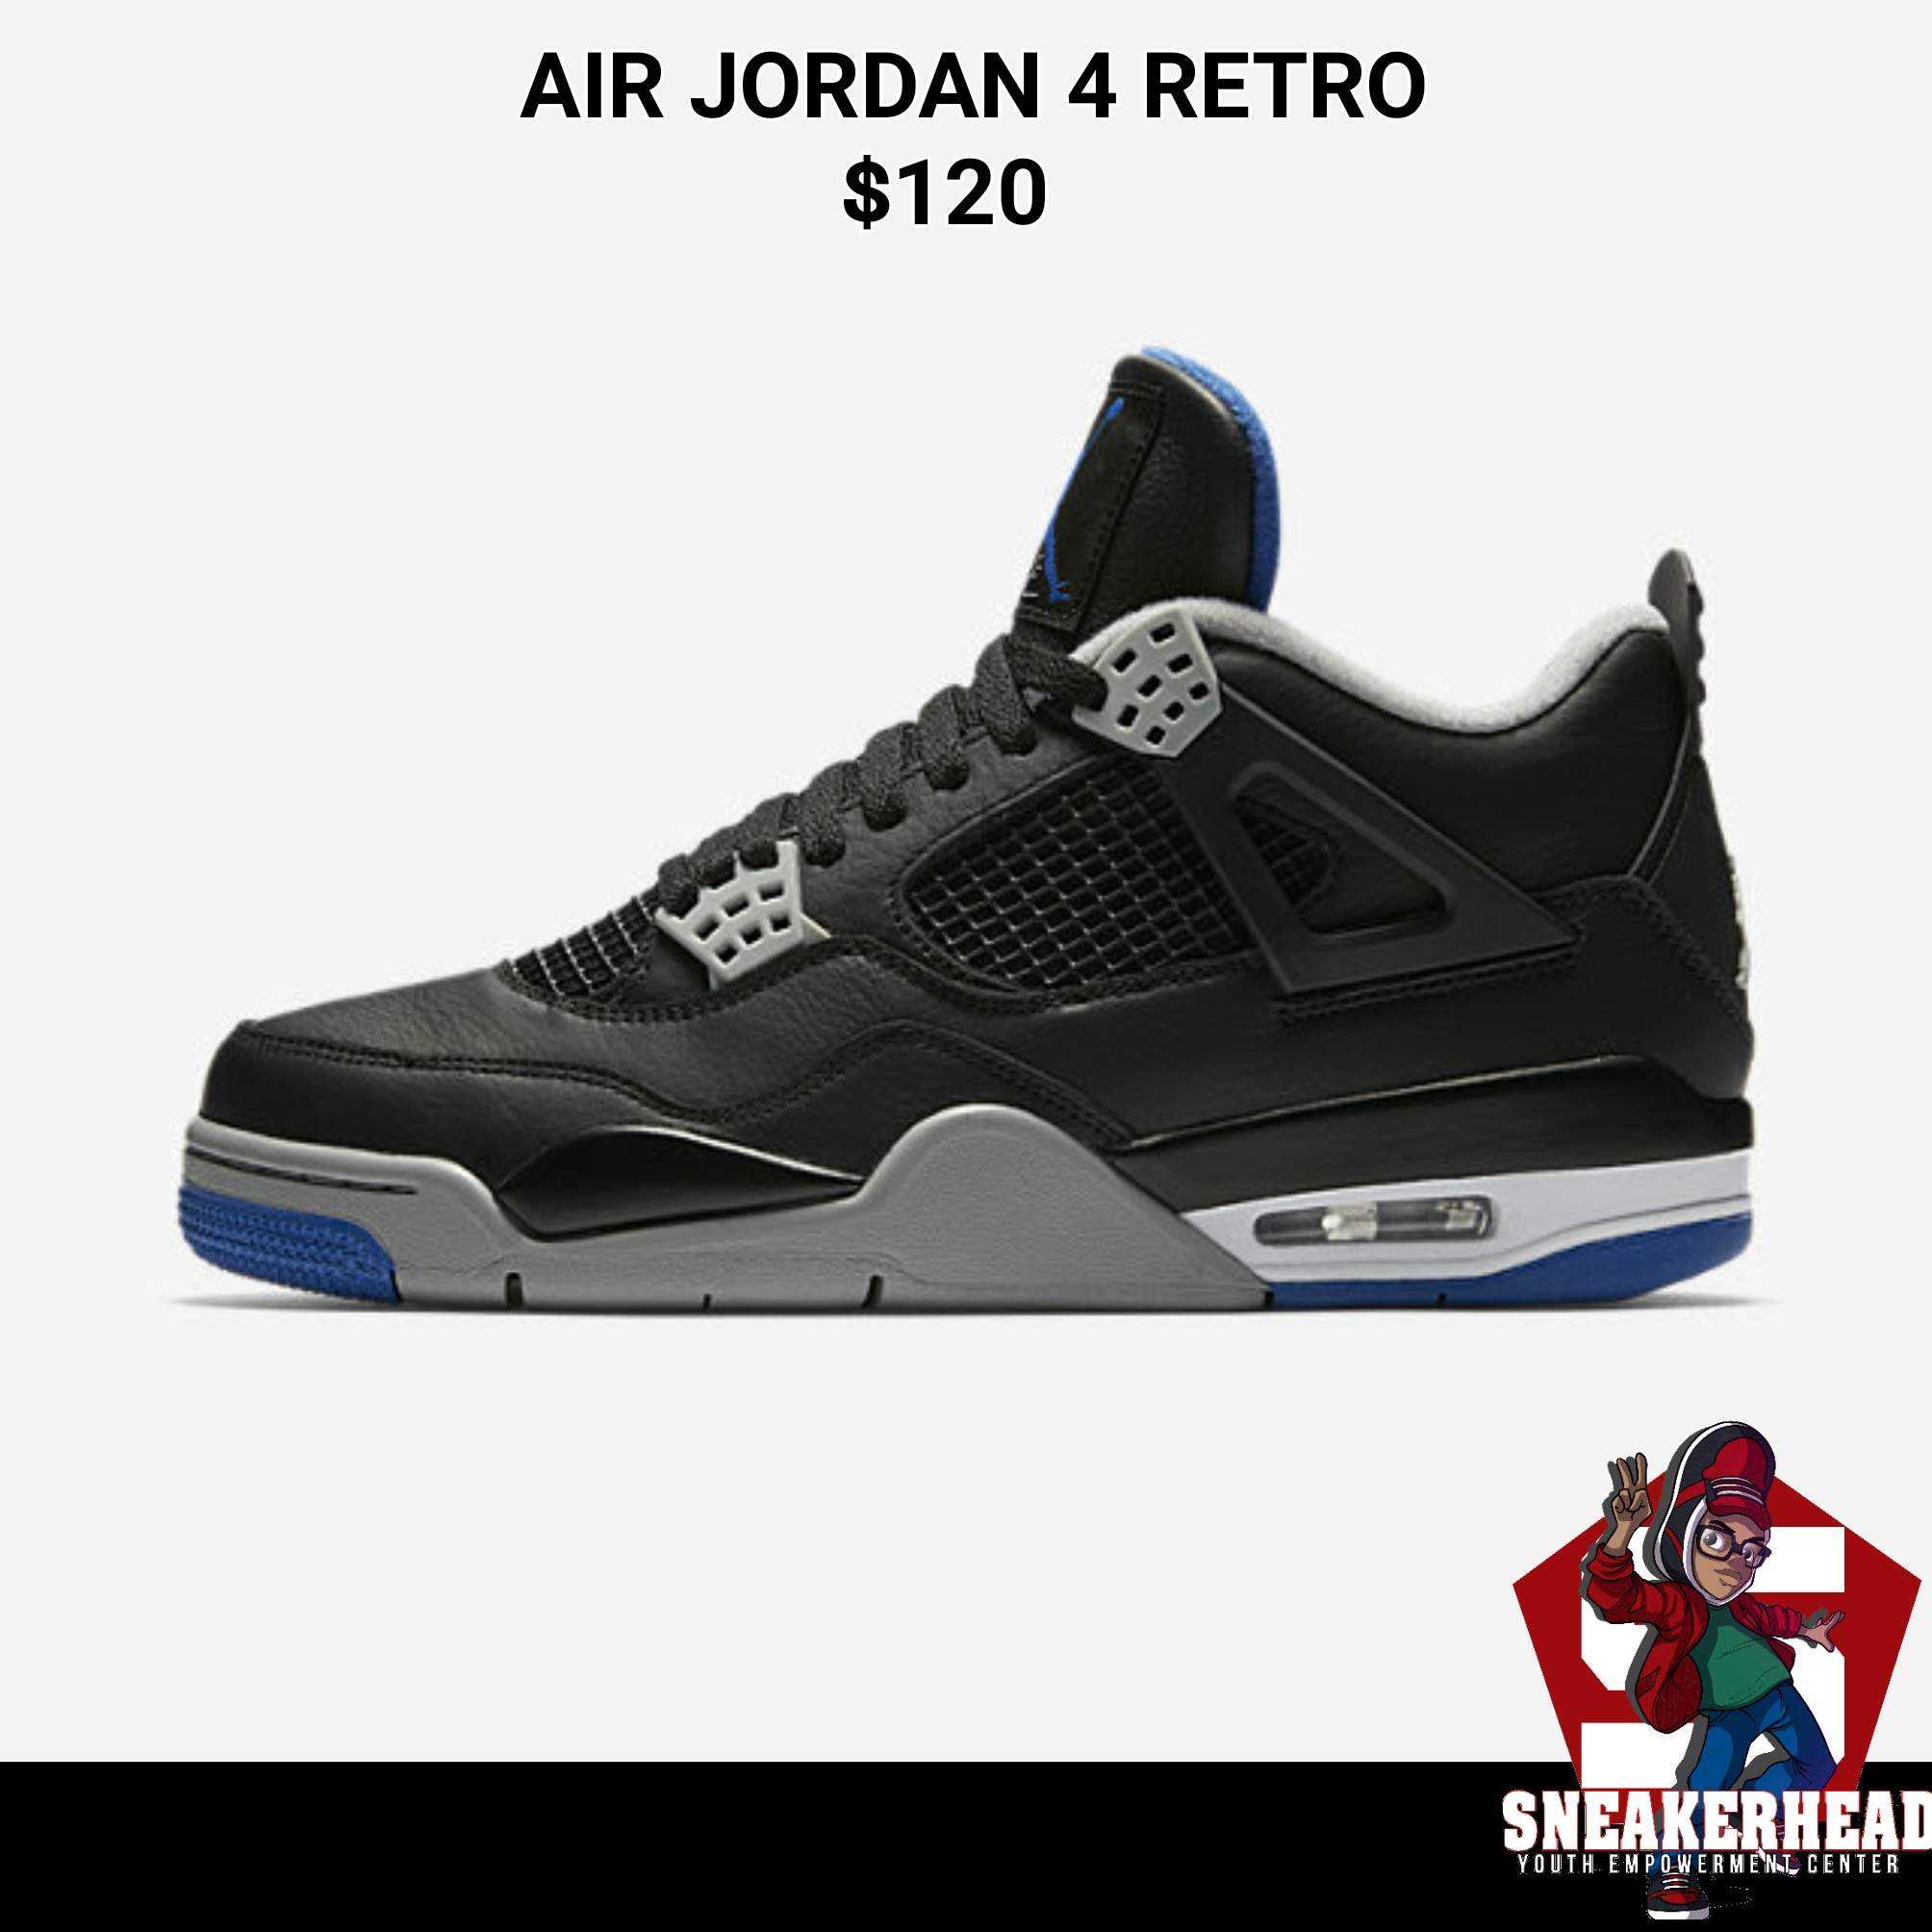 Air Jordan 4 Retro. Home/Air/Air Jordan 4 Retro